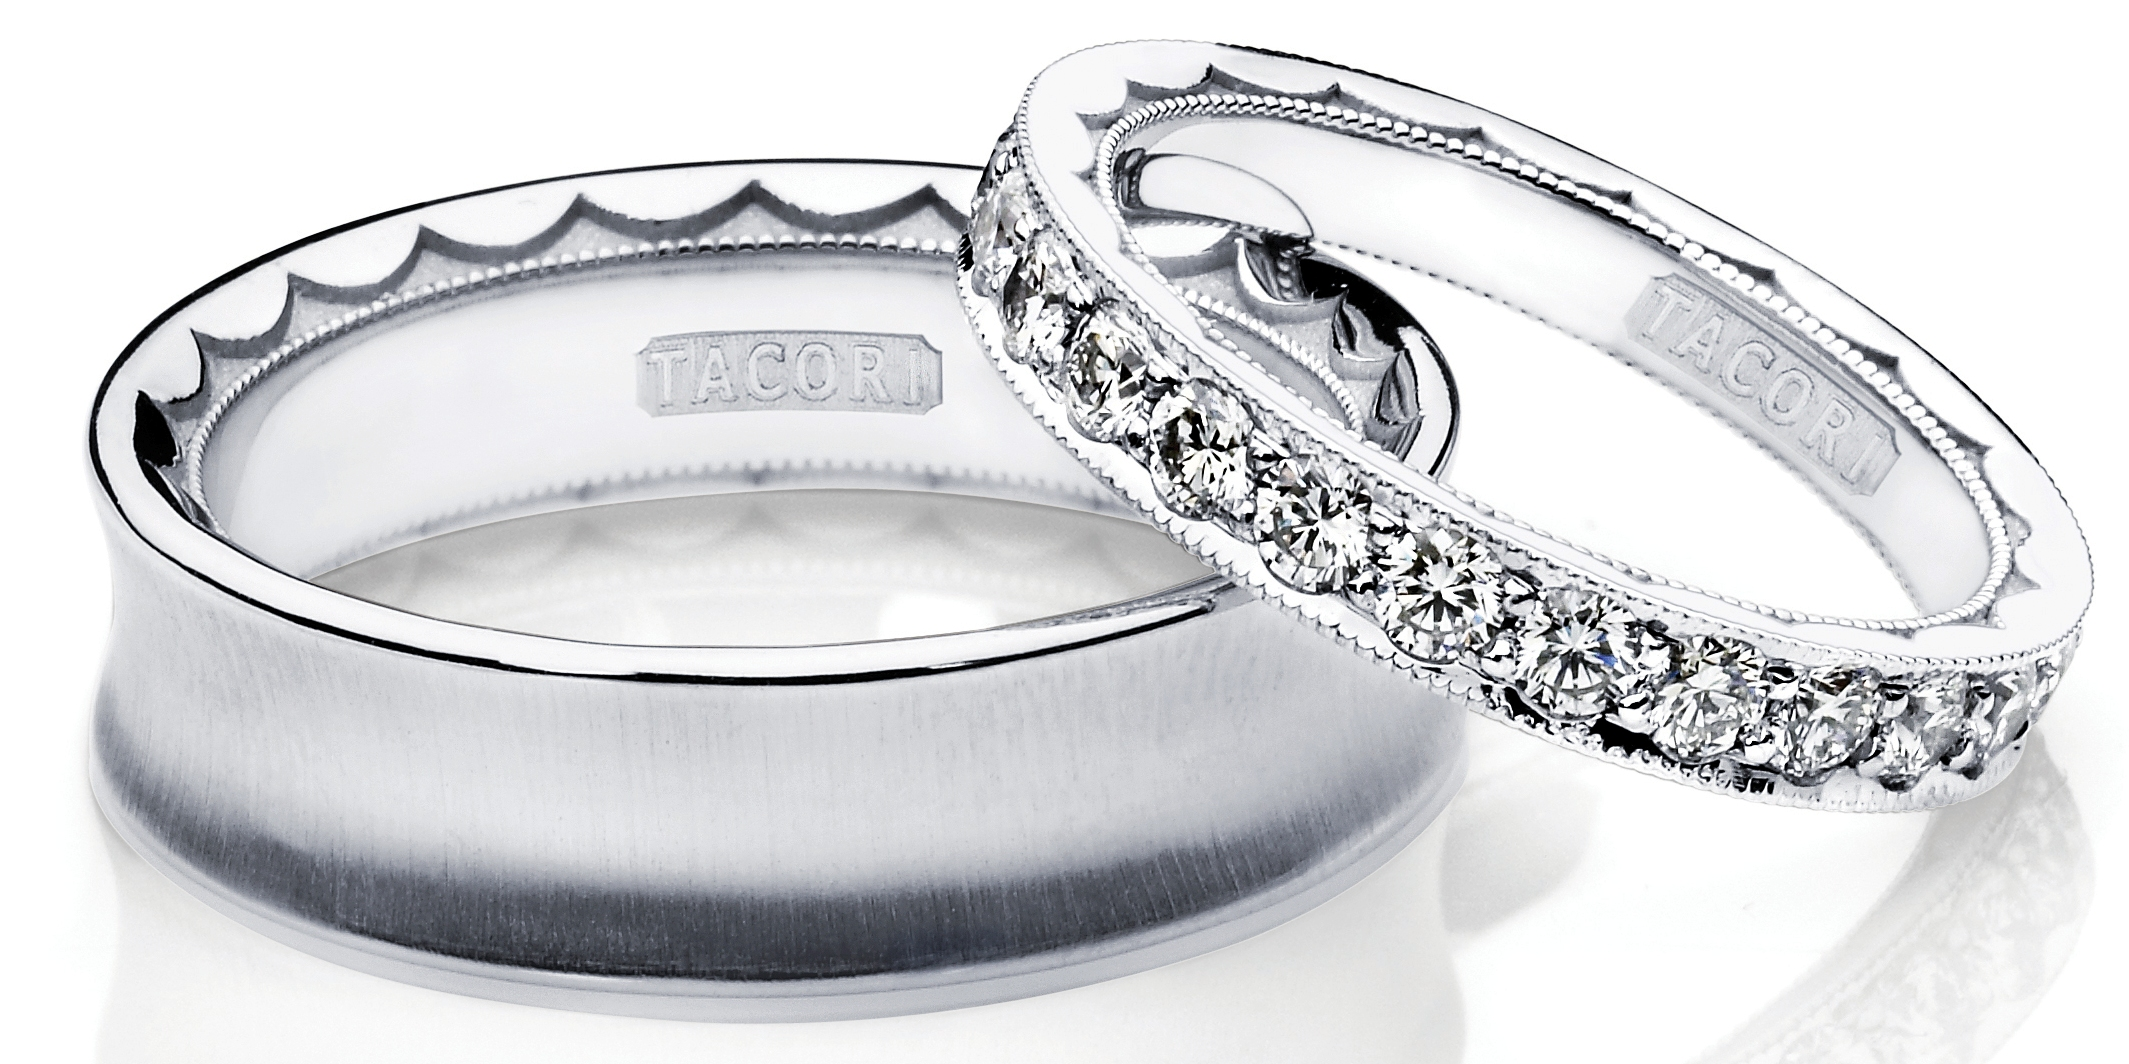 rustic il silver matching band zoom wedding sterling set jtby fullxfull listing commitment bands